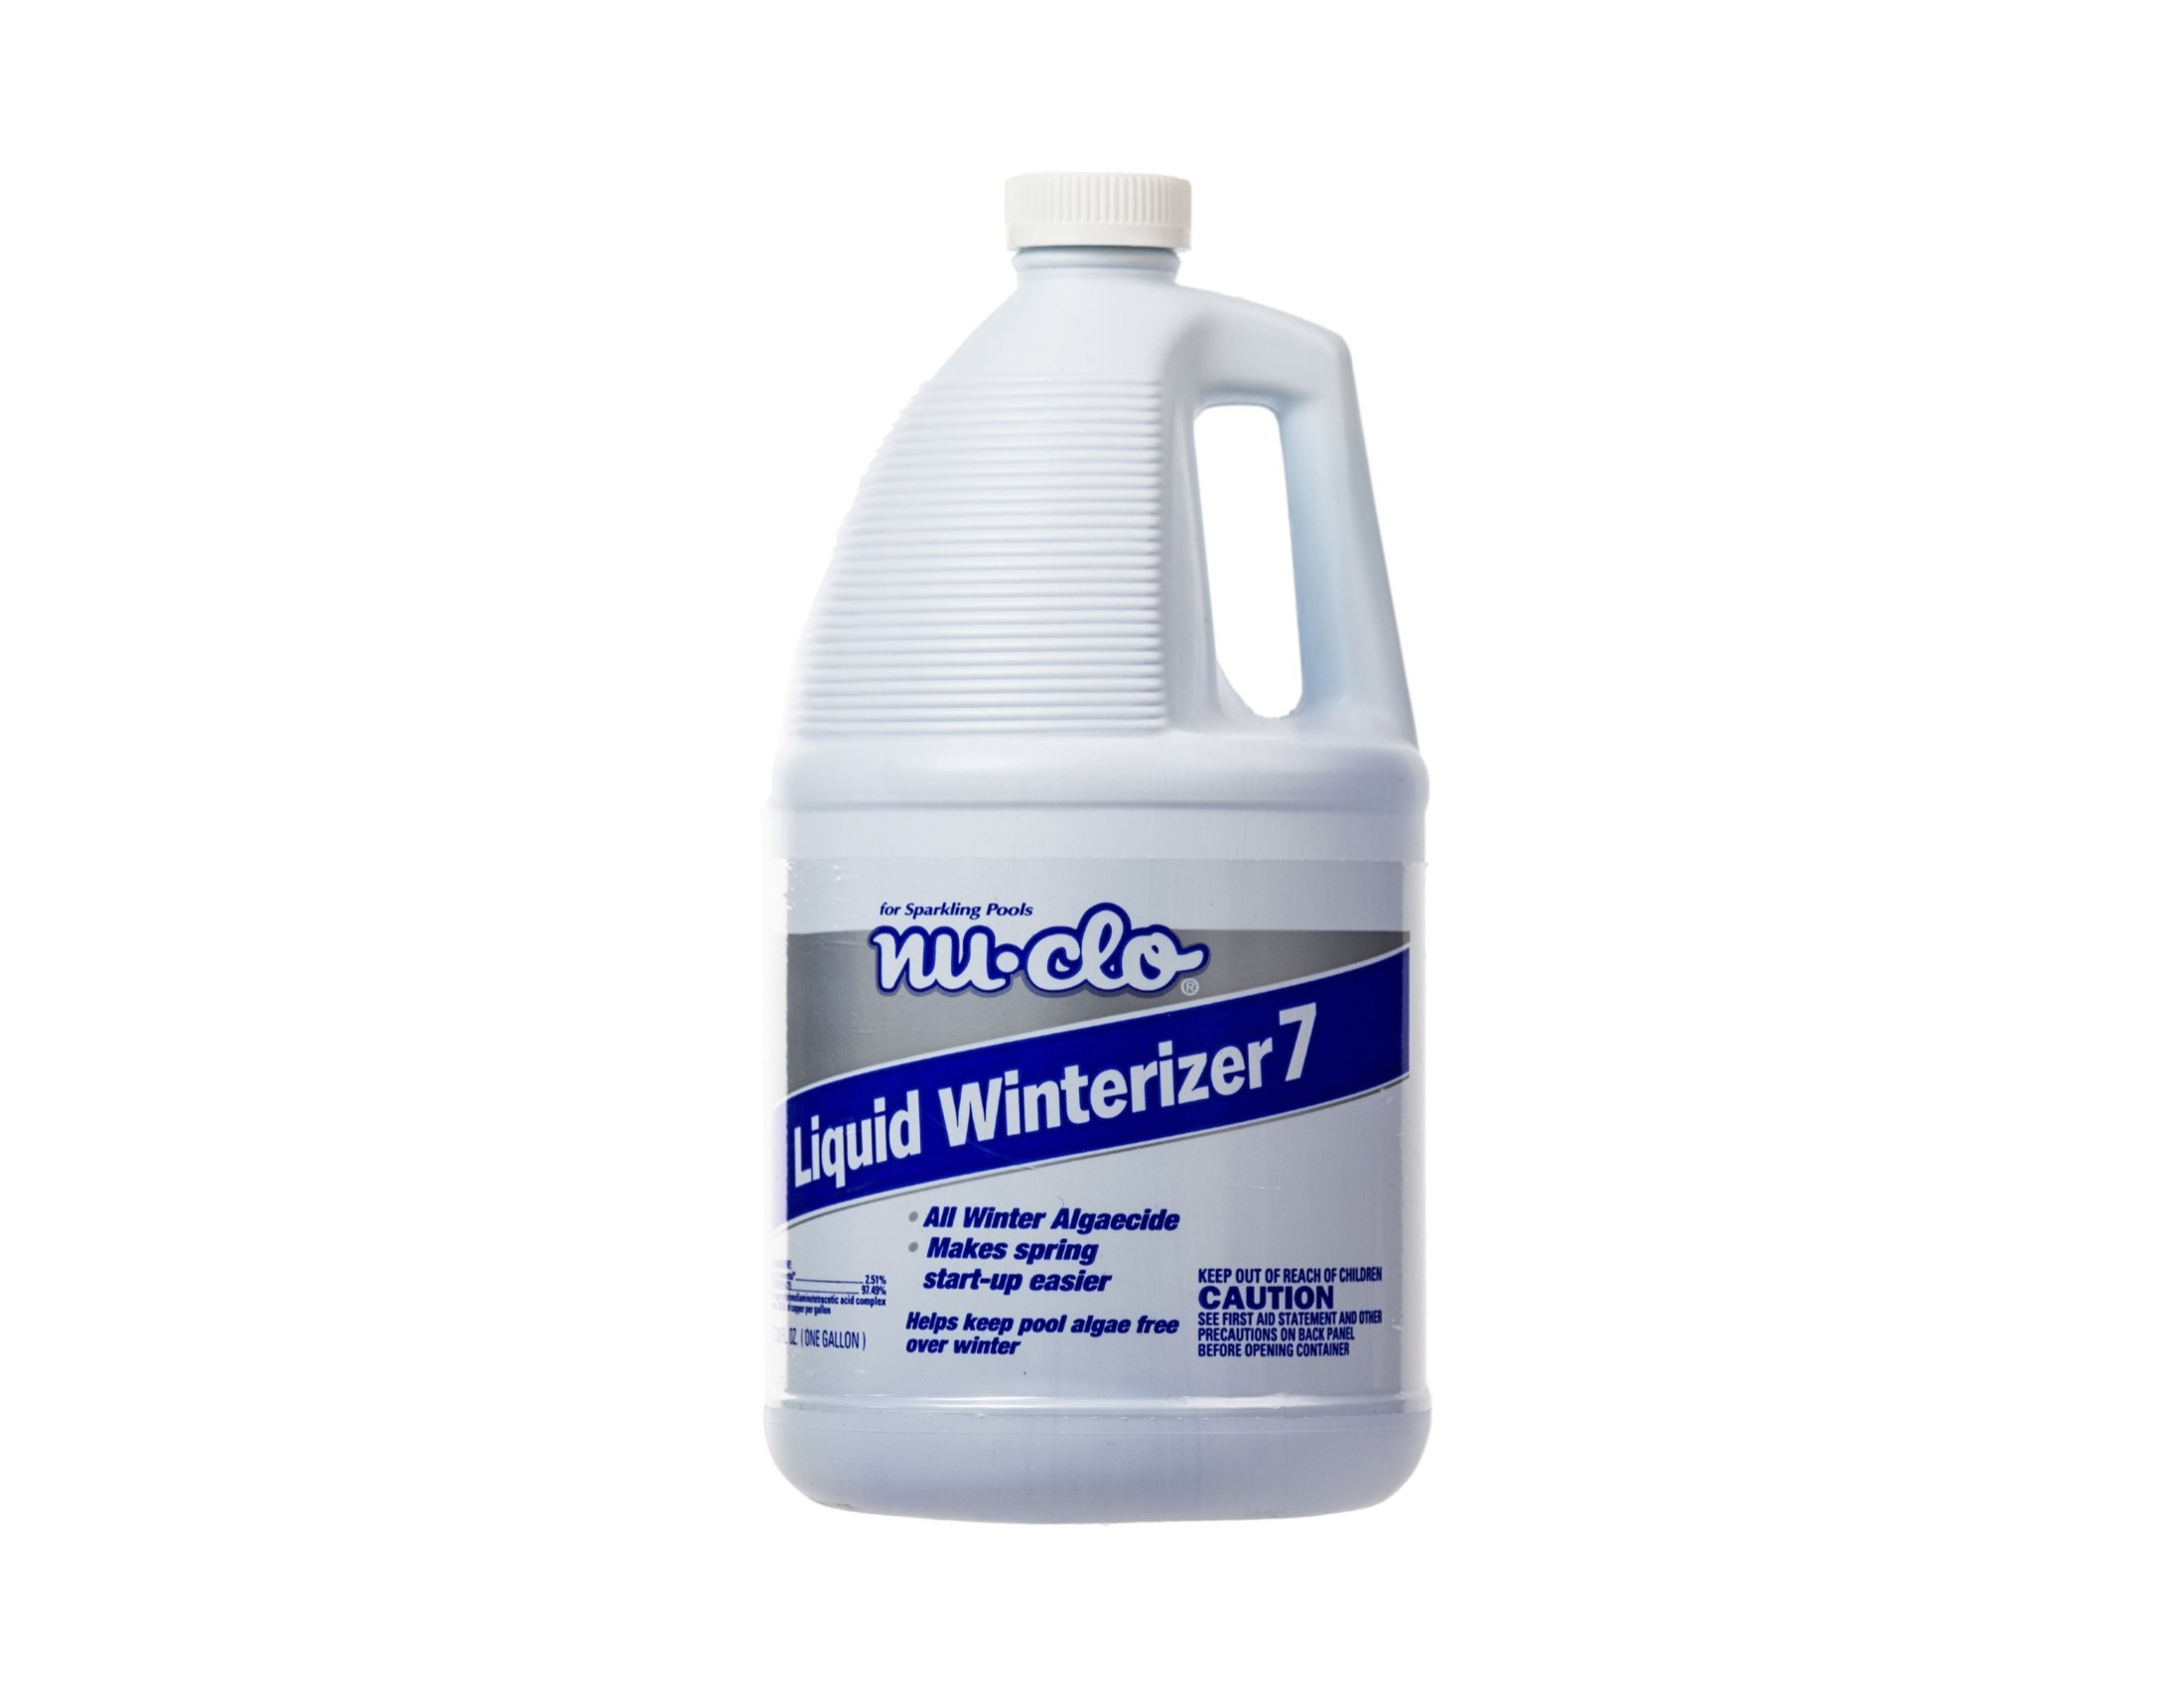 Nu-Clo Gallon Liquid Winterizer 7 Winter Algaecide for Swimming Pools - Up to 40,000 Gallons 2707 by Nu-Clo